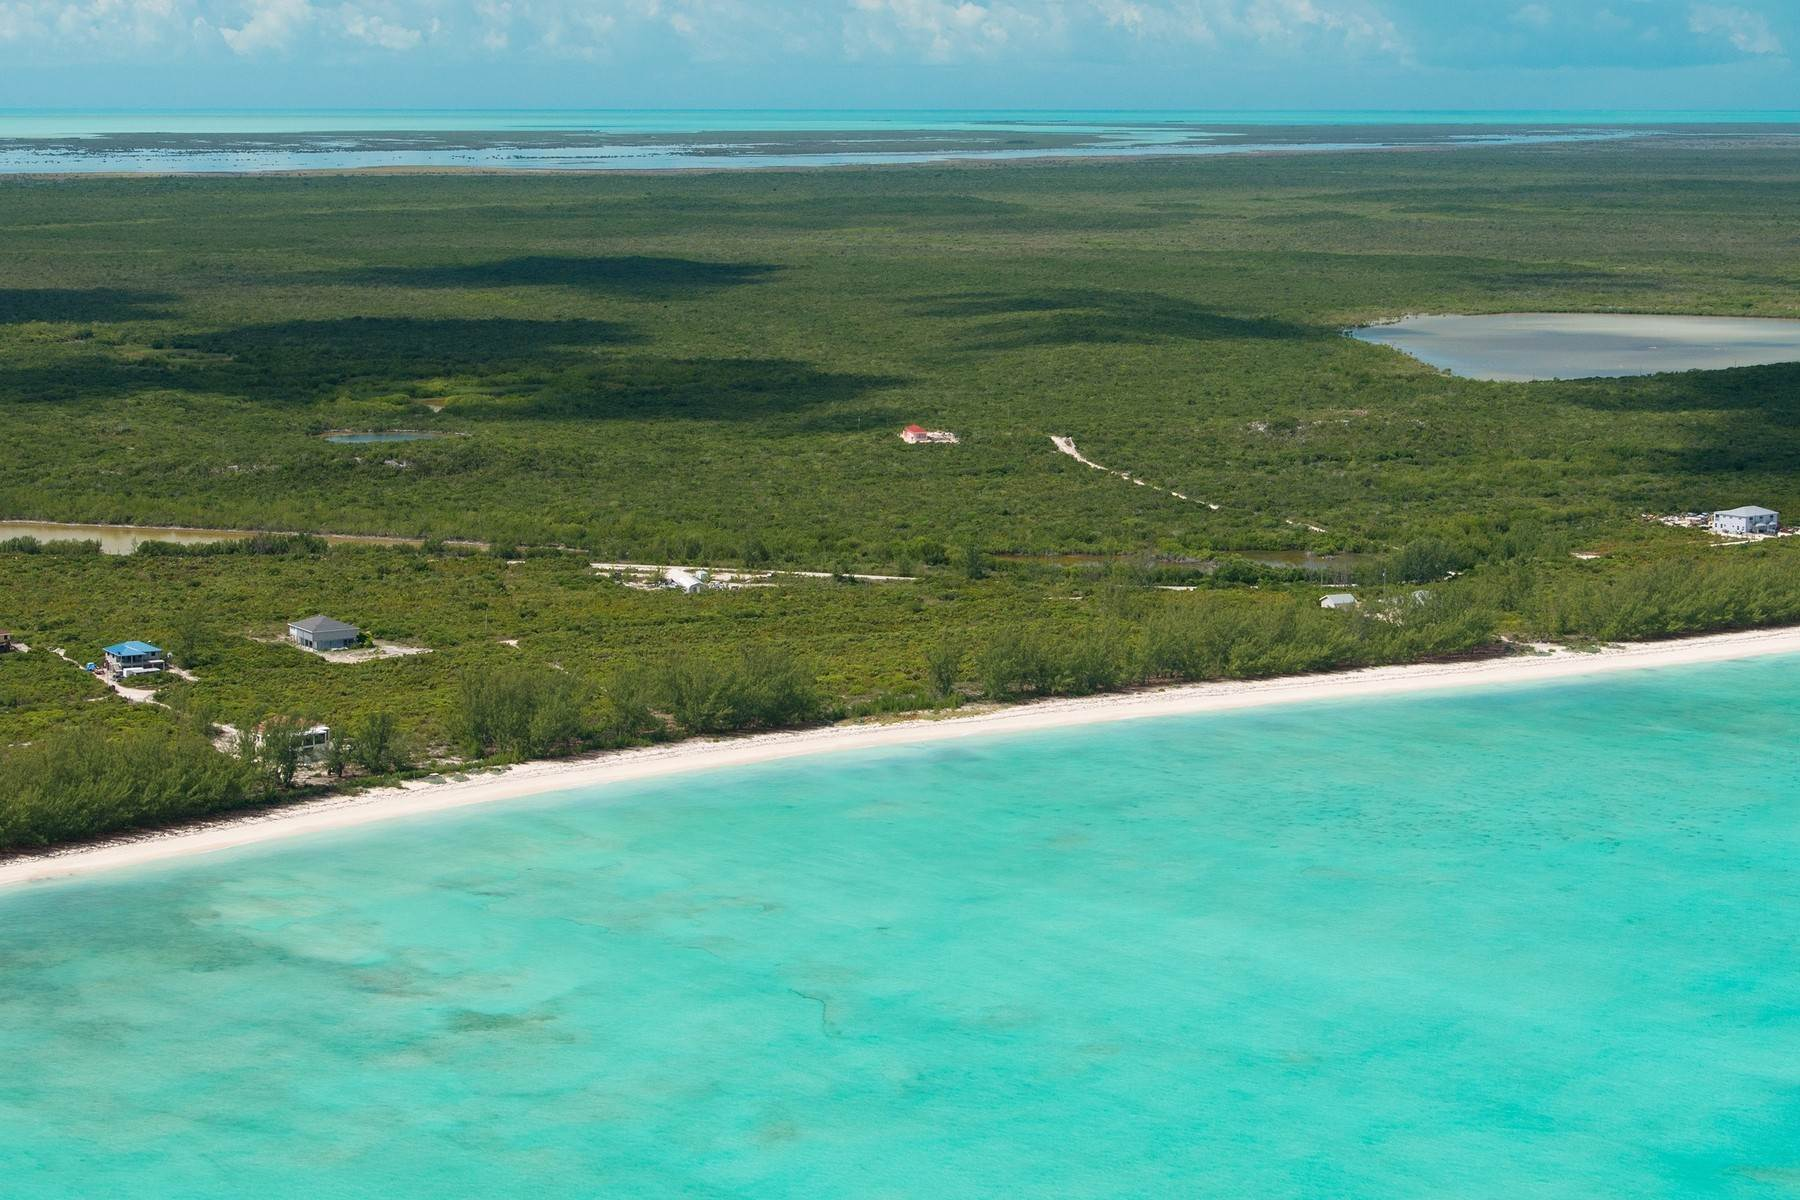 Land for Sale at Middle Caicos Beachfront Land Bambarra, Middle Caicos Turks And Caicos Islands